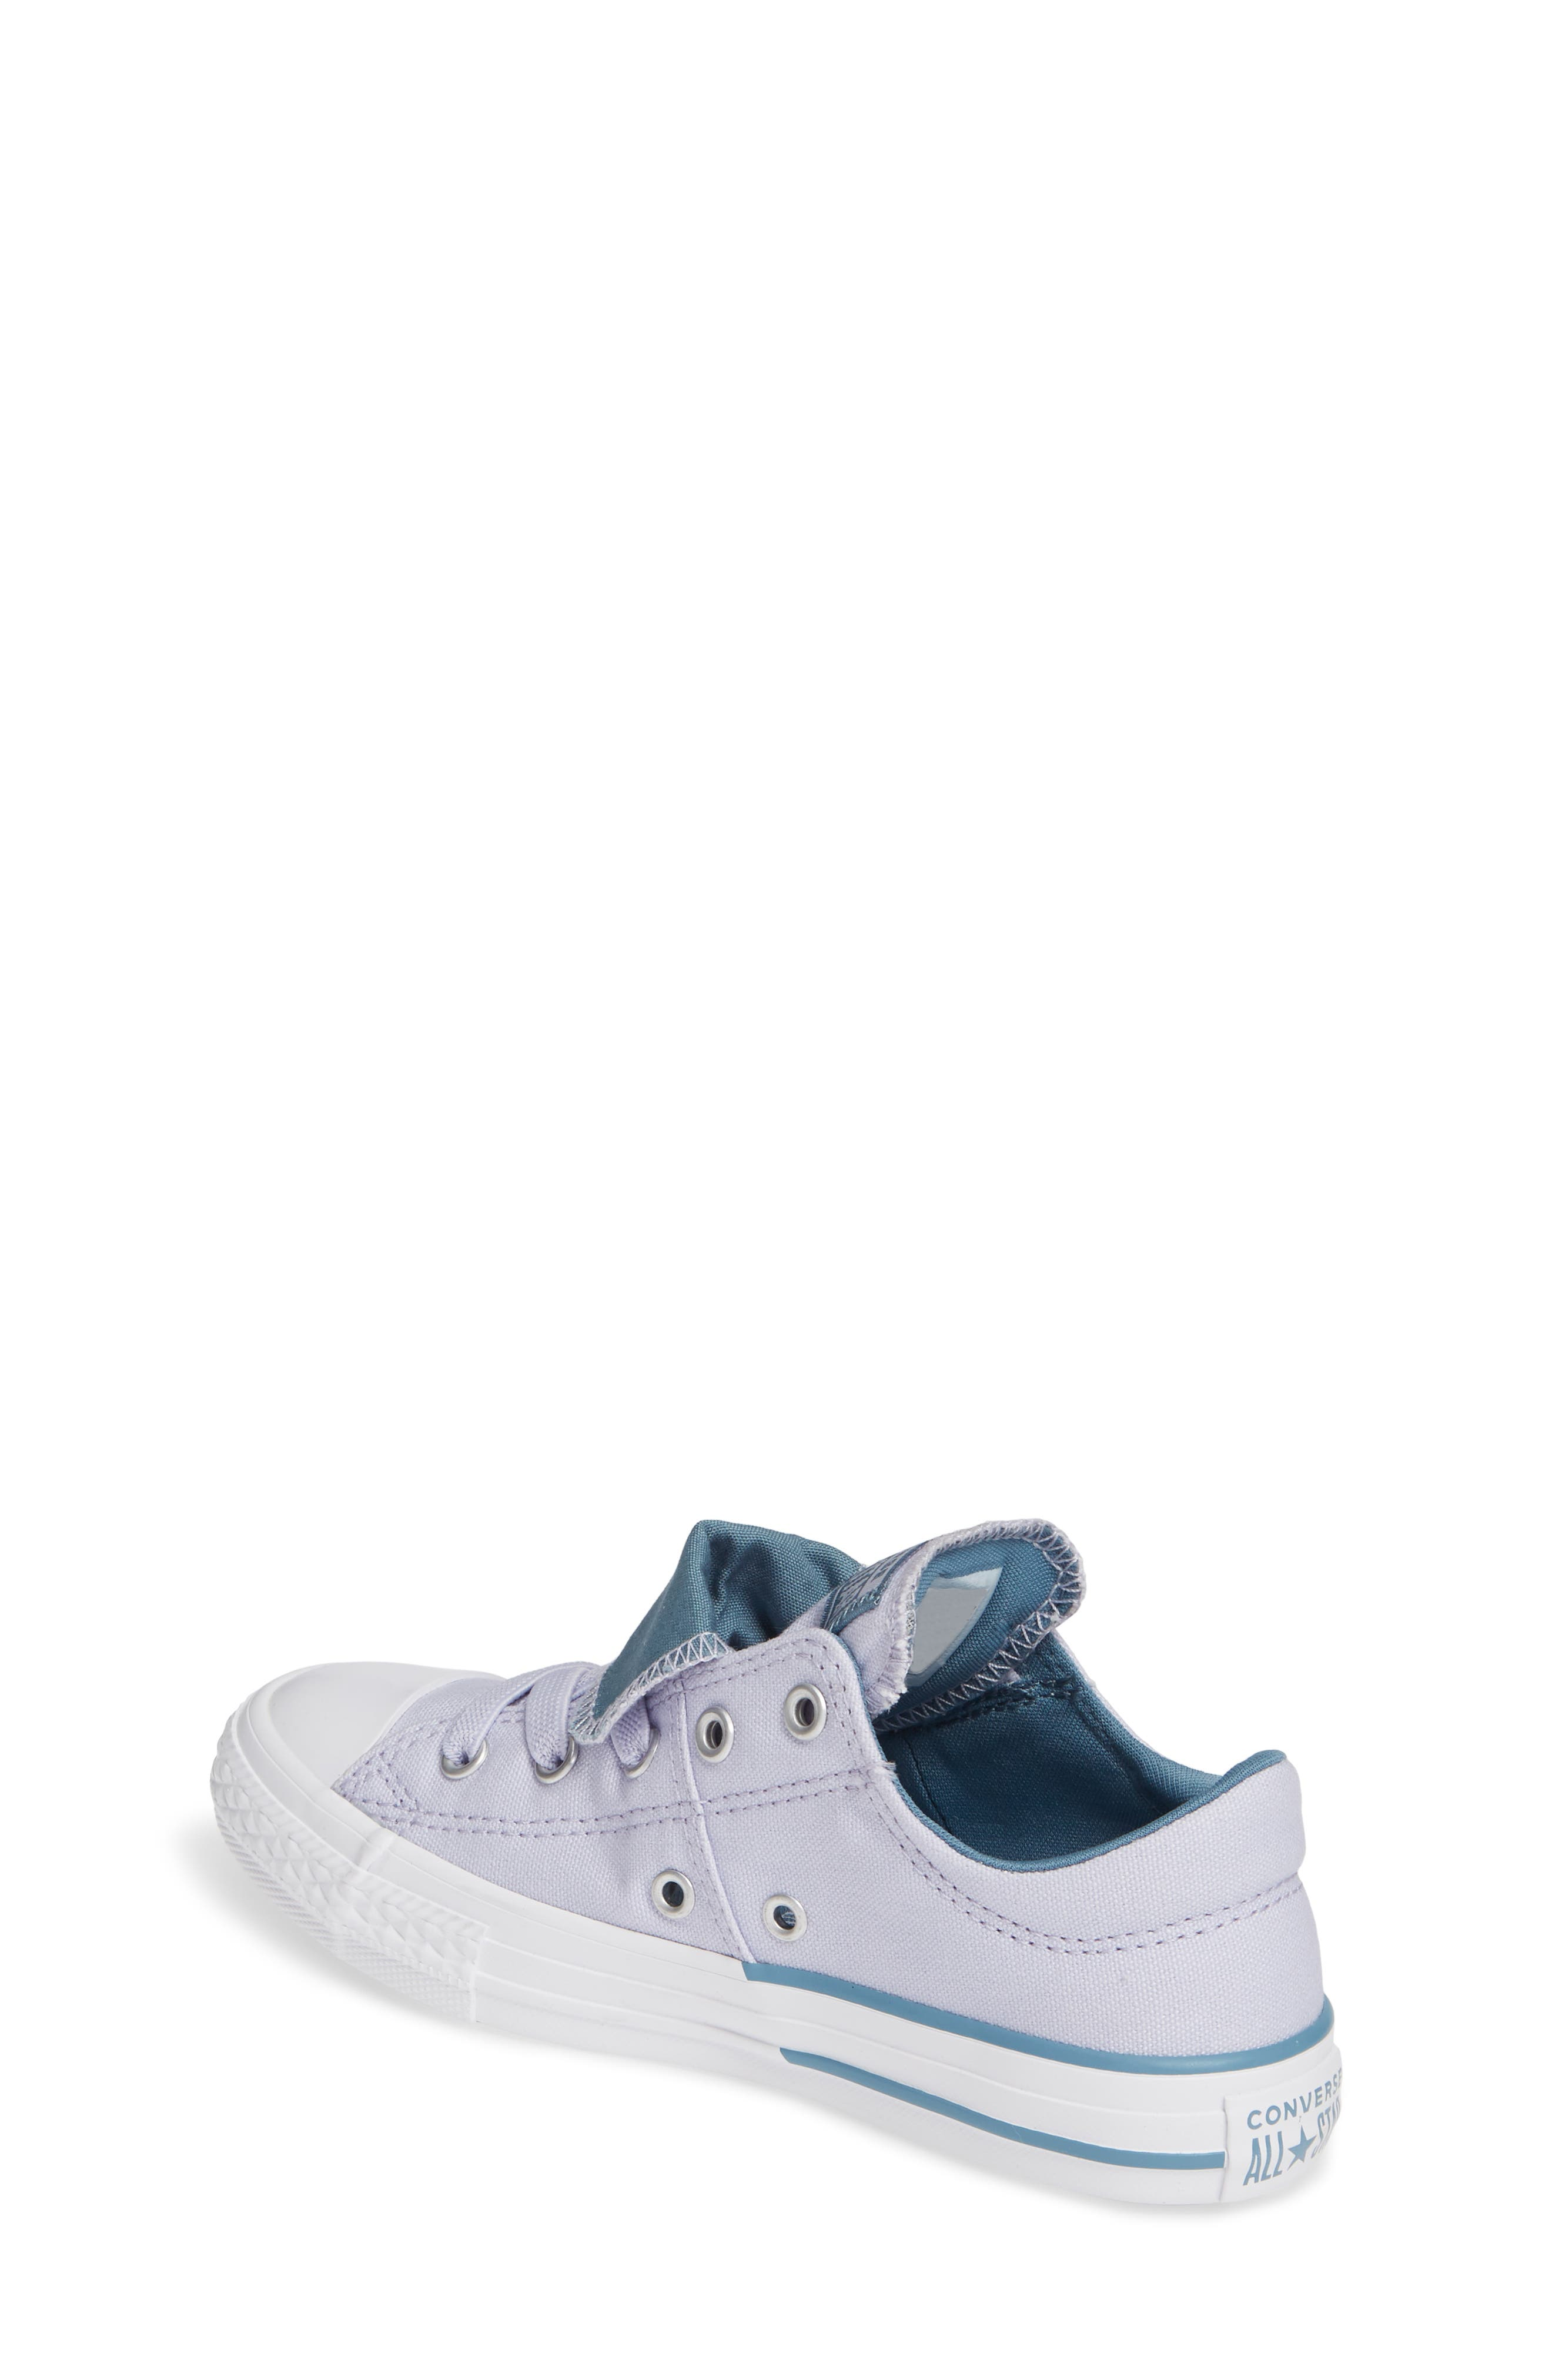 ,                             Chuck Taylor<sup>®</sup> All Star<sup>®</sup> Maddie Double Tongue Sneaker,                             Alternate thumbnail 74, color,                             530